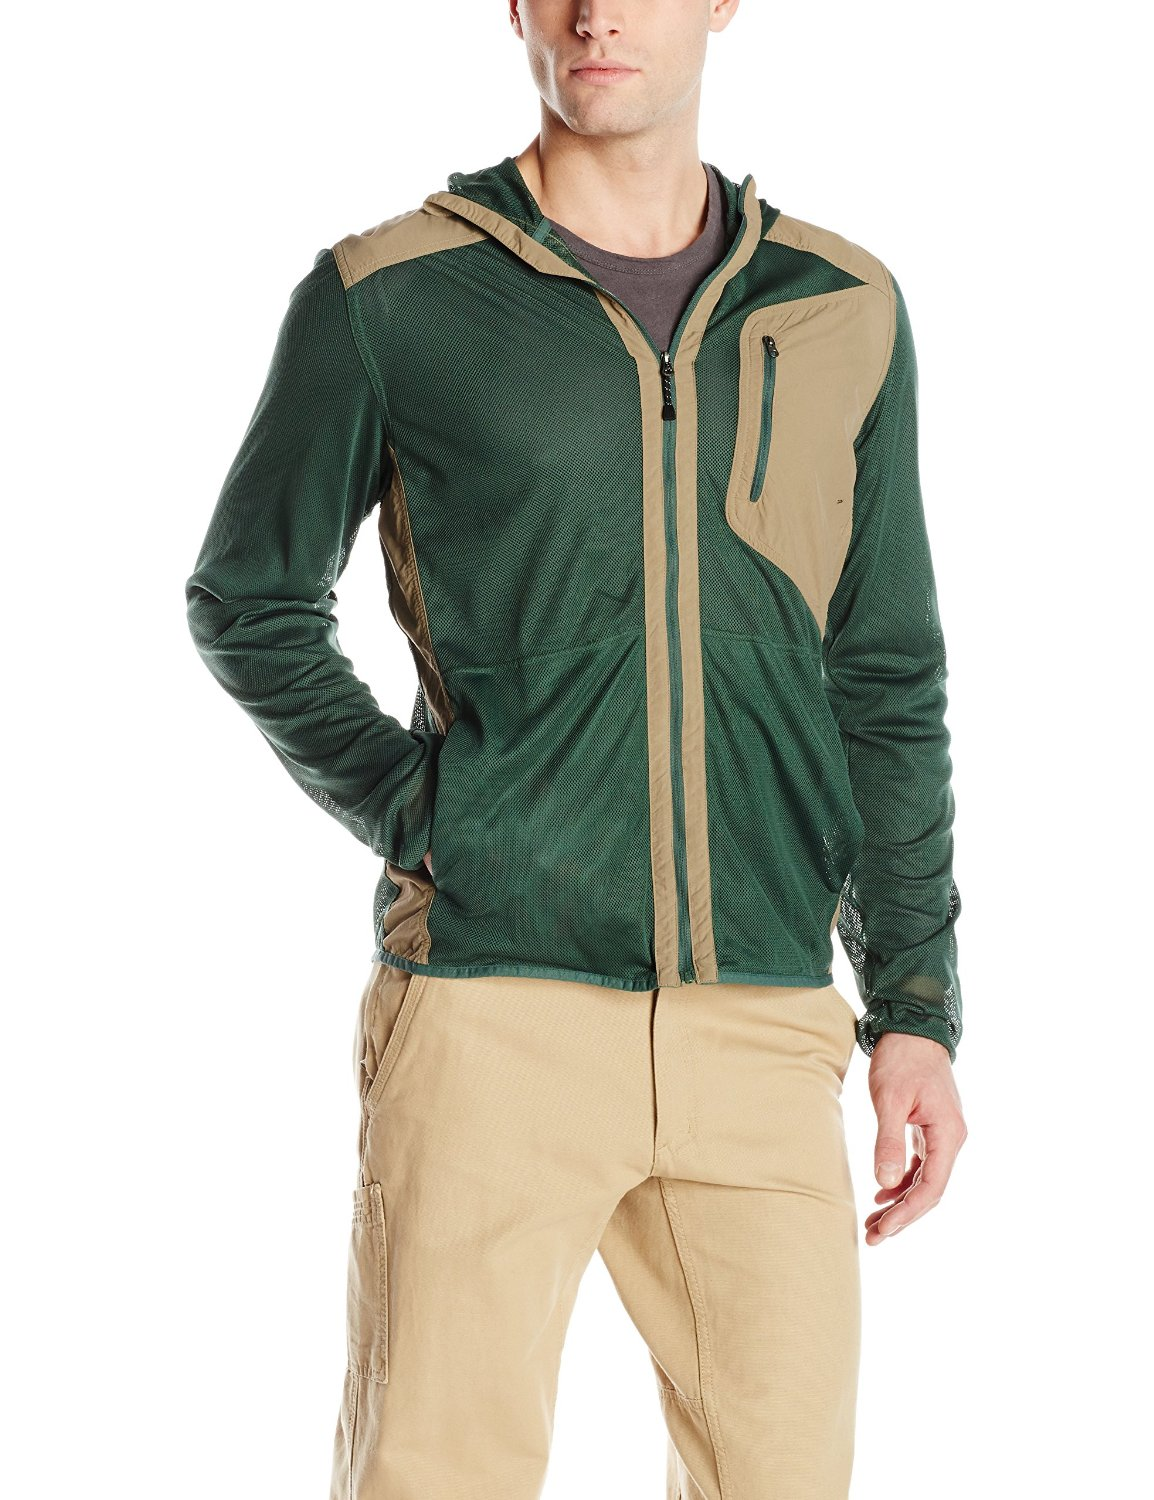 mosquito-repellent-clothes-mens-jacket